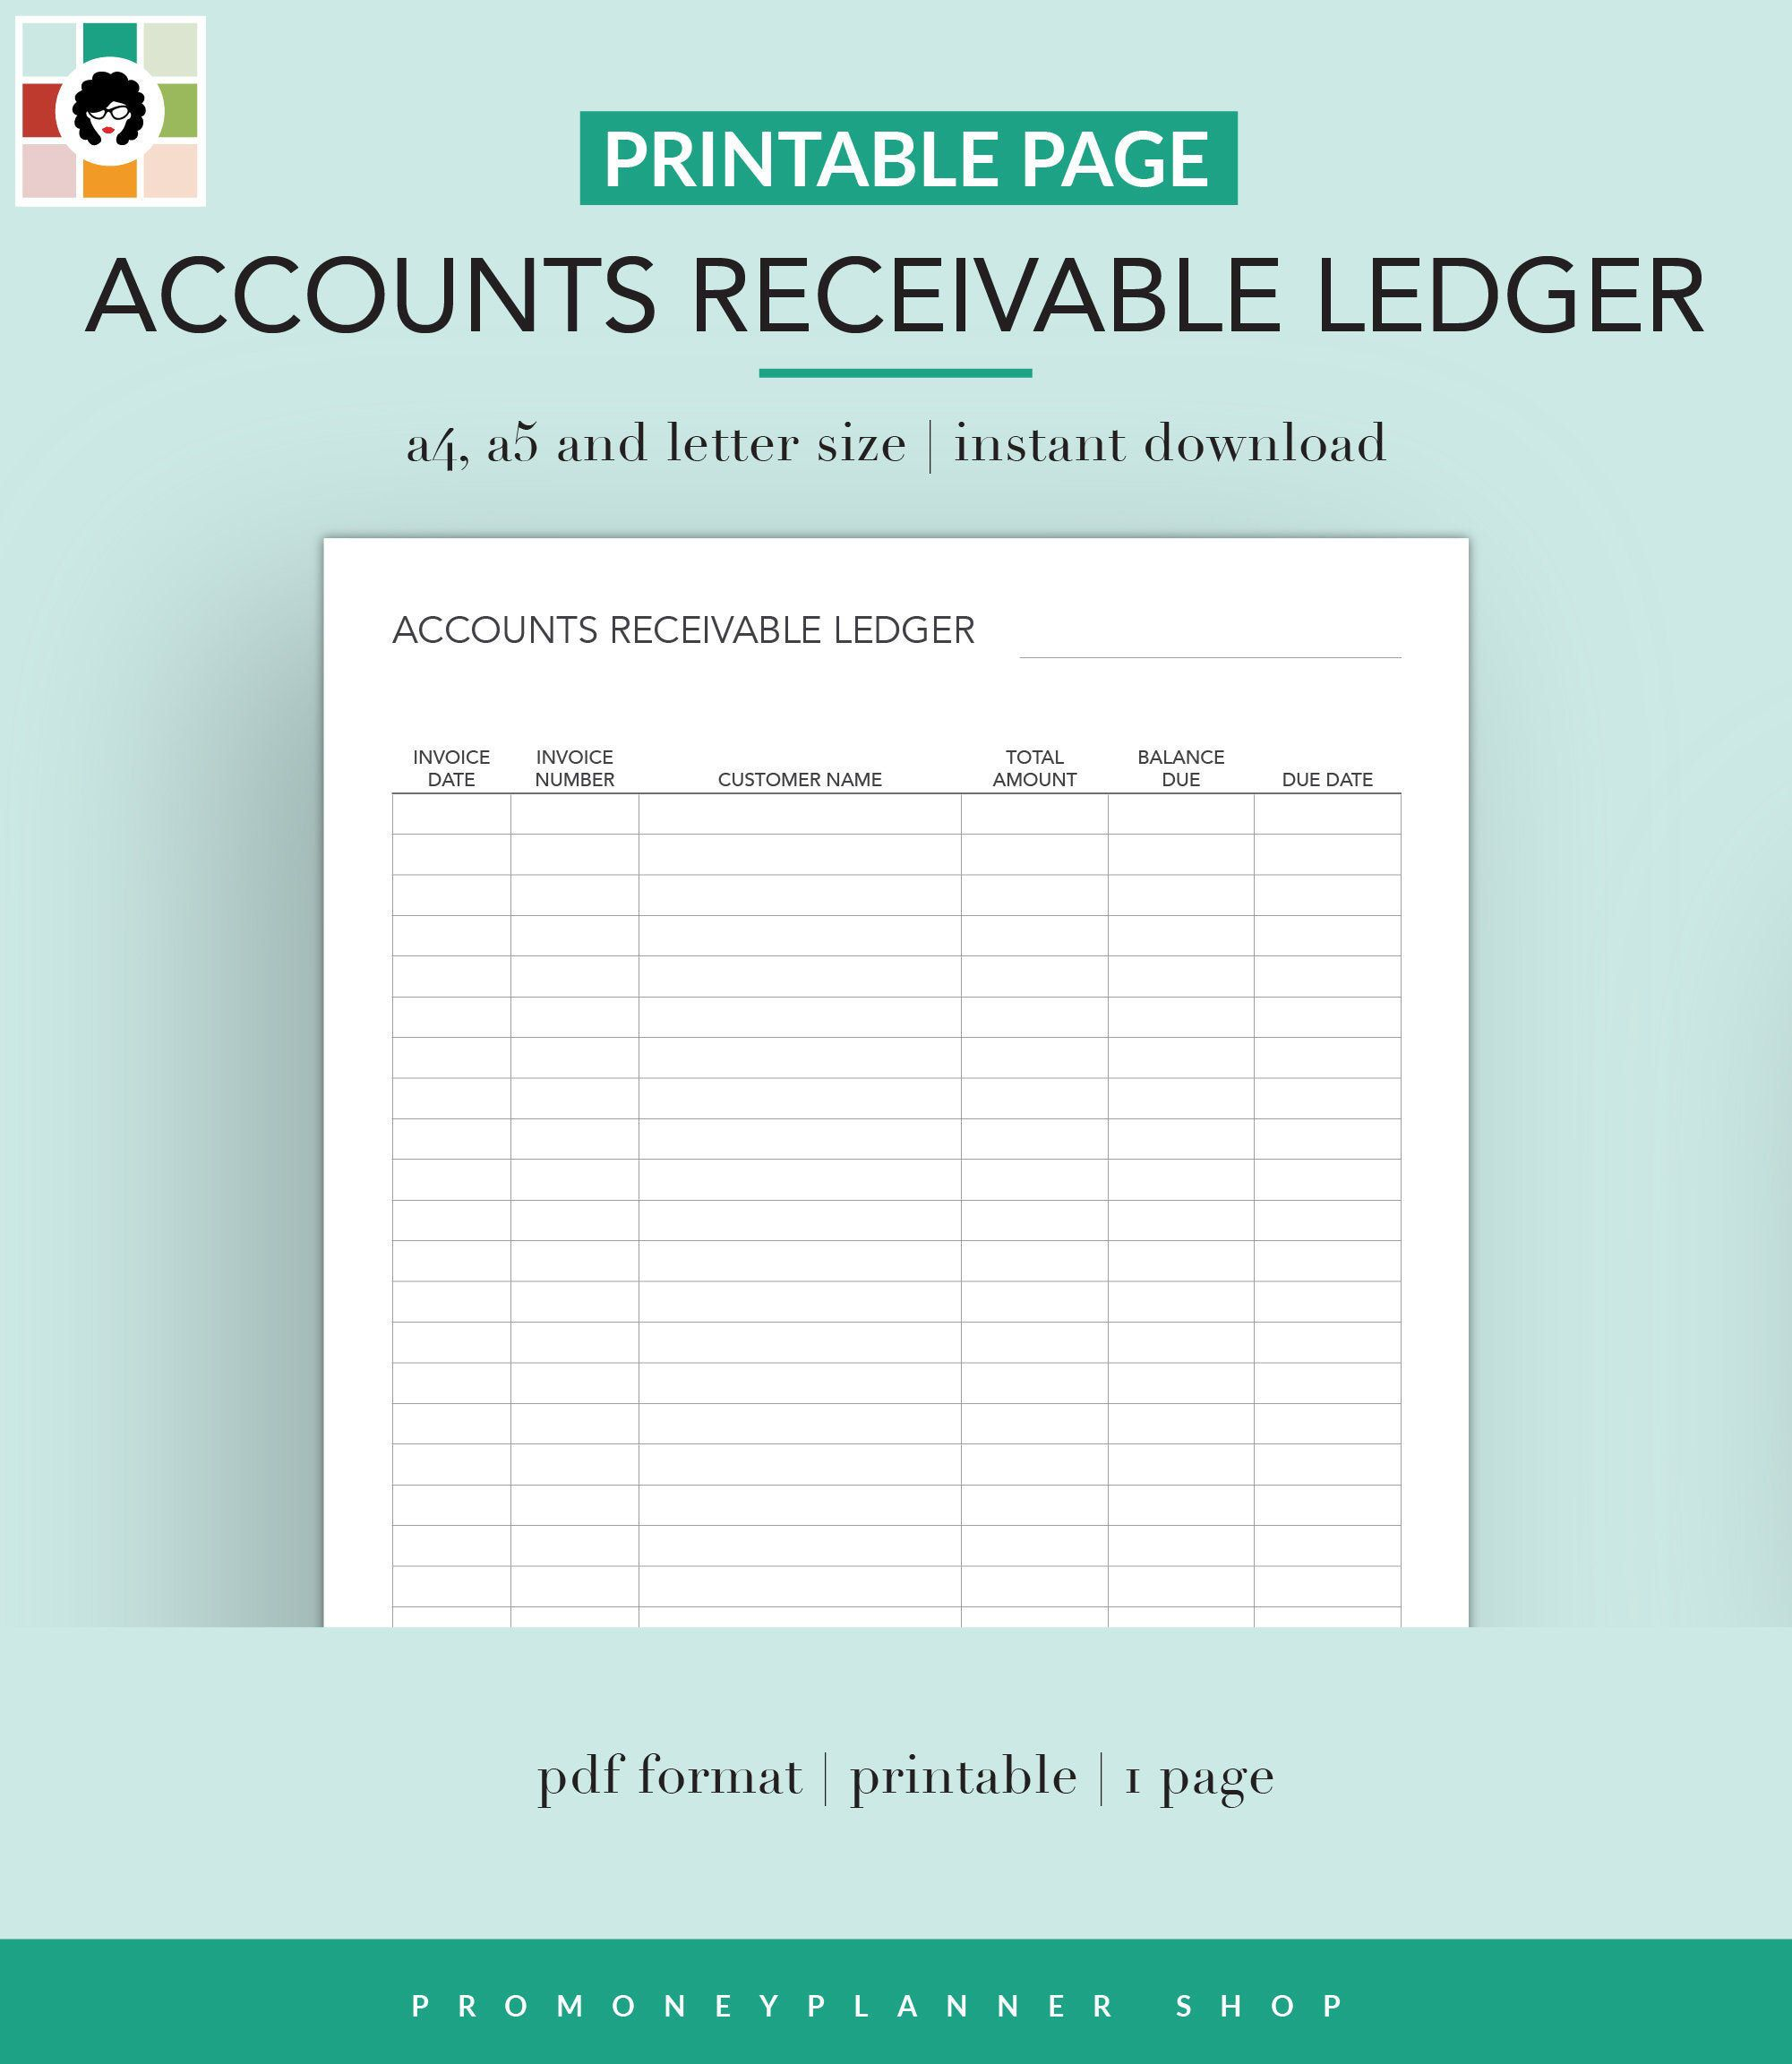 Download Accounts Receivable With Aging Excel Template Exceldatapro Inside Accounts Receivable Report Te Excel Templates Accounts Receivable Statement Template